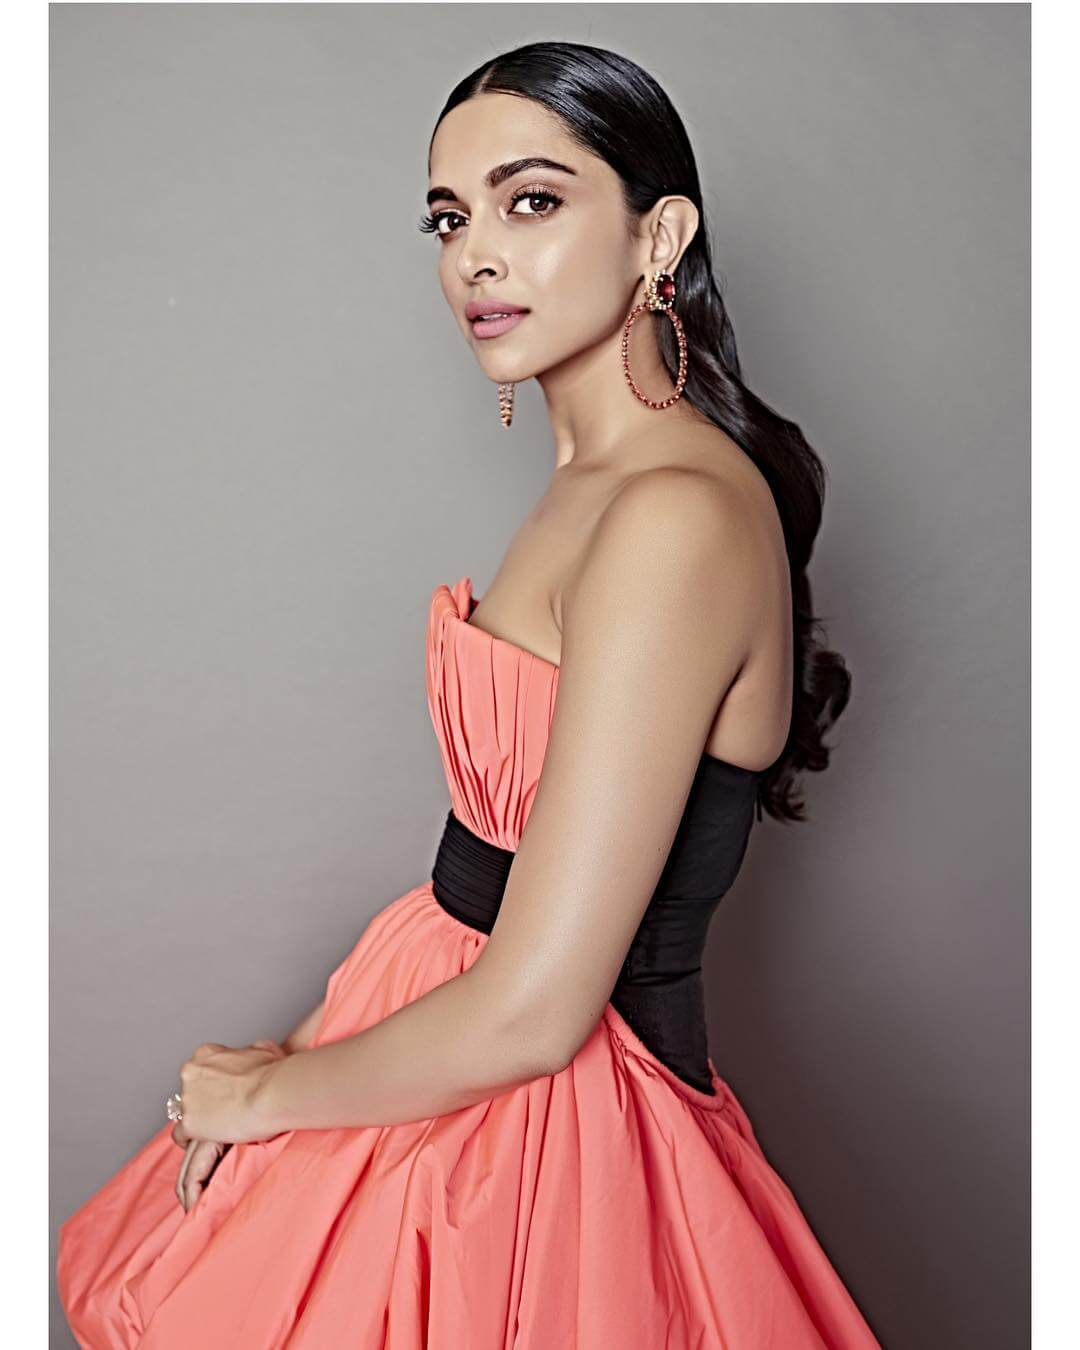 Deepika Padukone in Stylish Dress at 2019 Filmfare Glamour and Style Awards - February 12, 2019 1